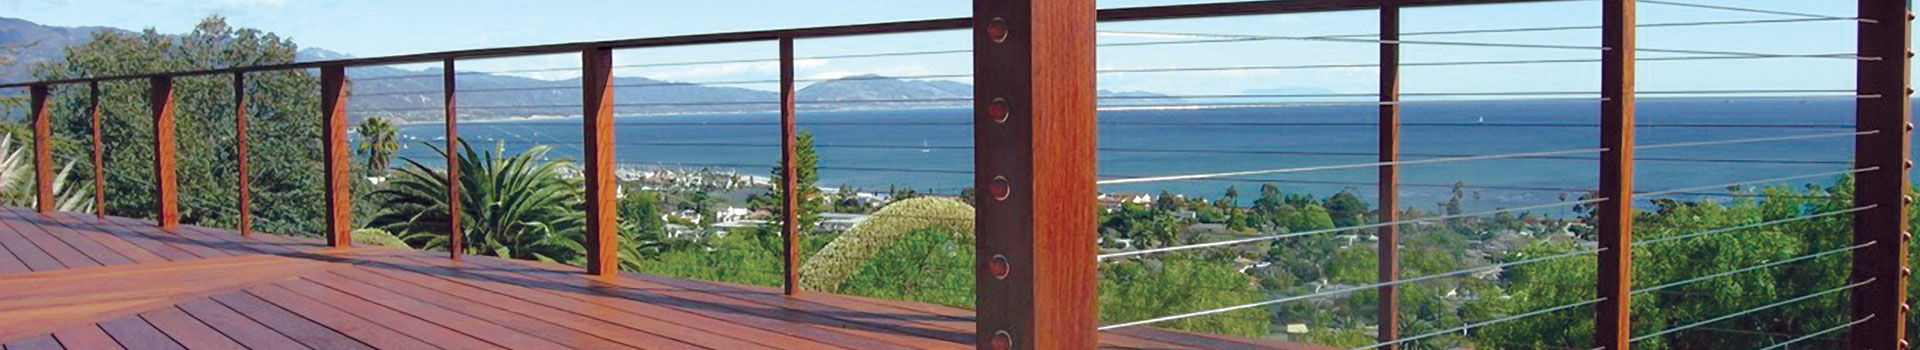 5 Undeniable Benefits of Stainless Cable Railings